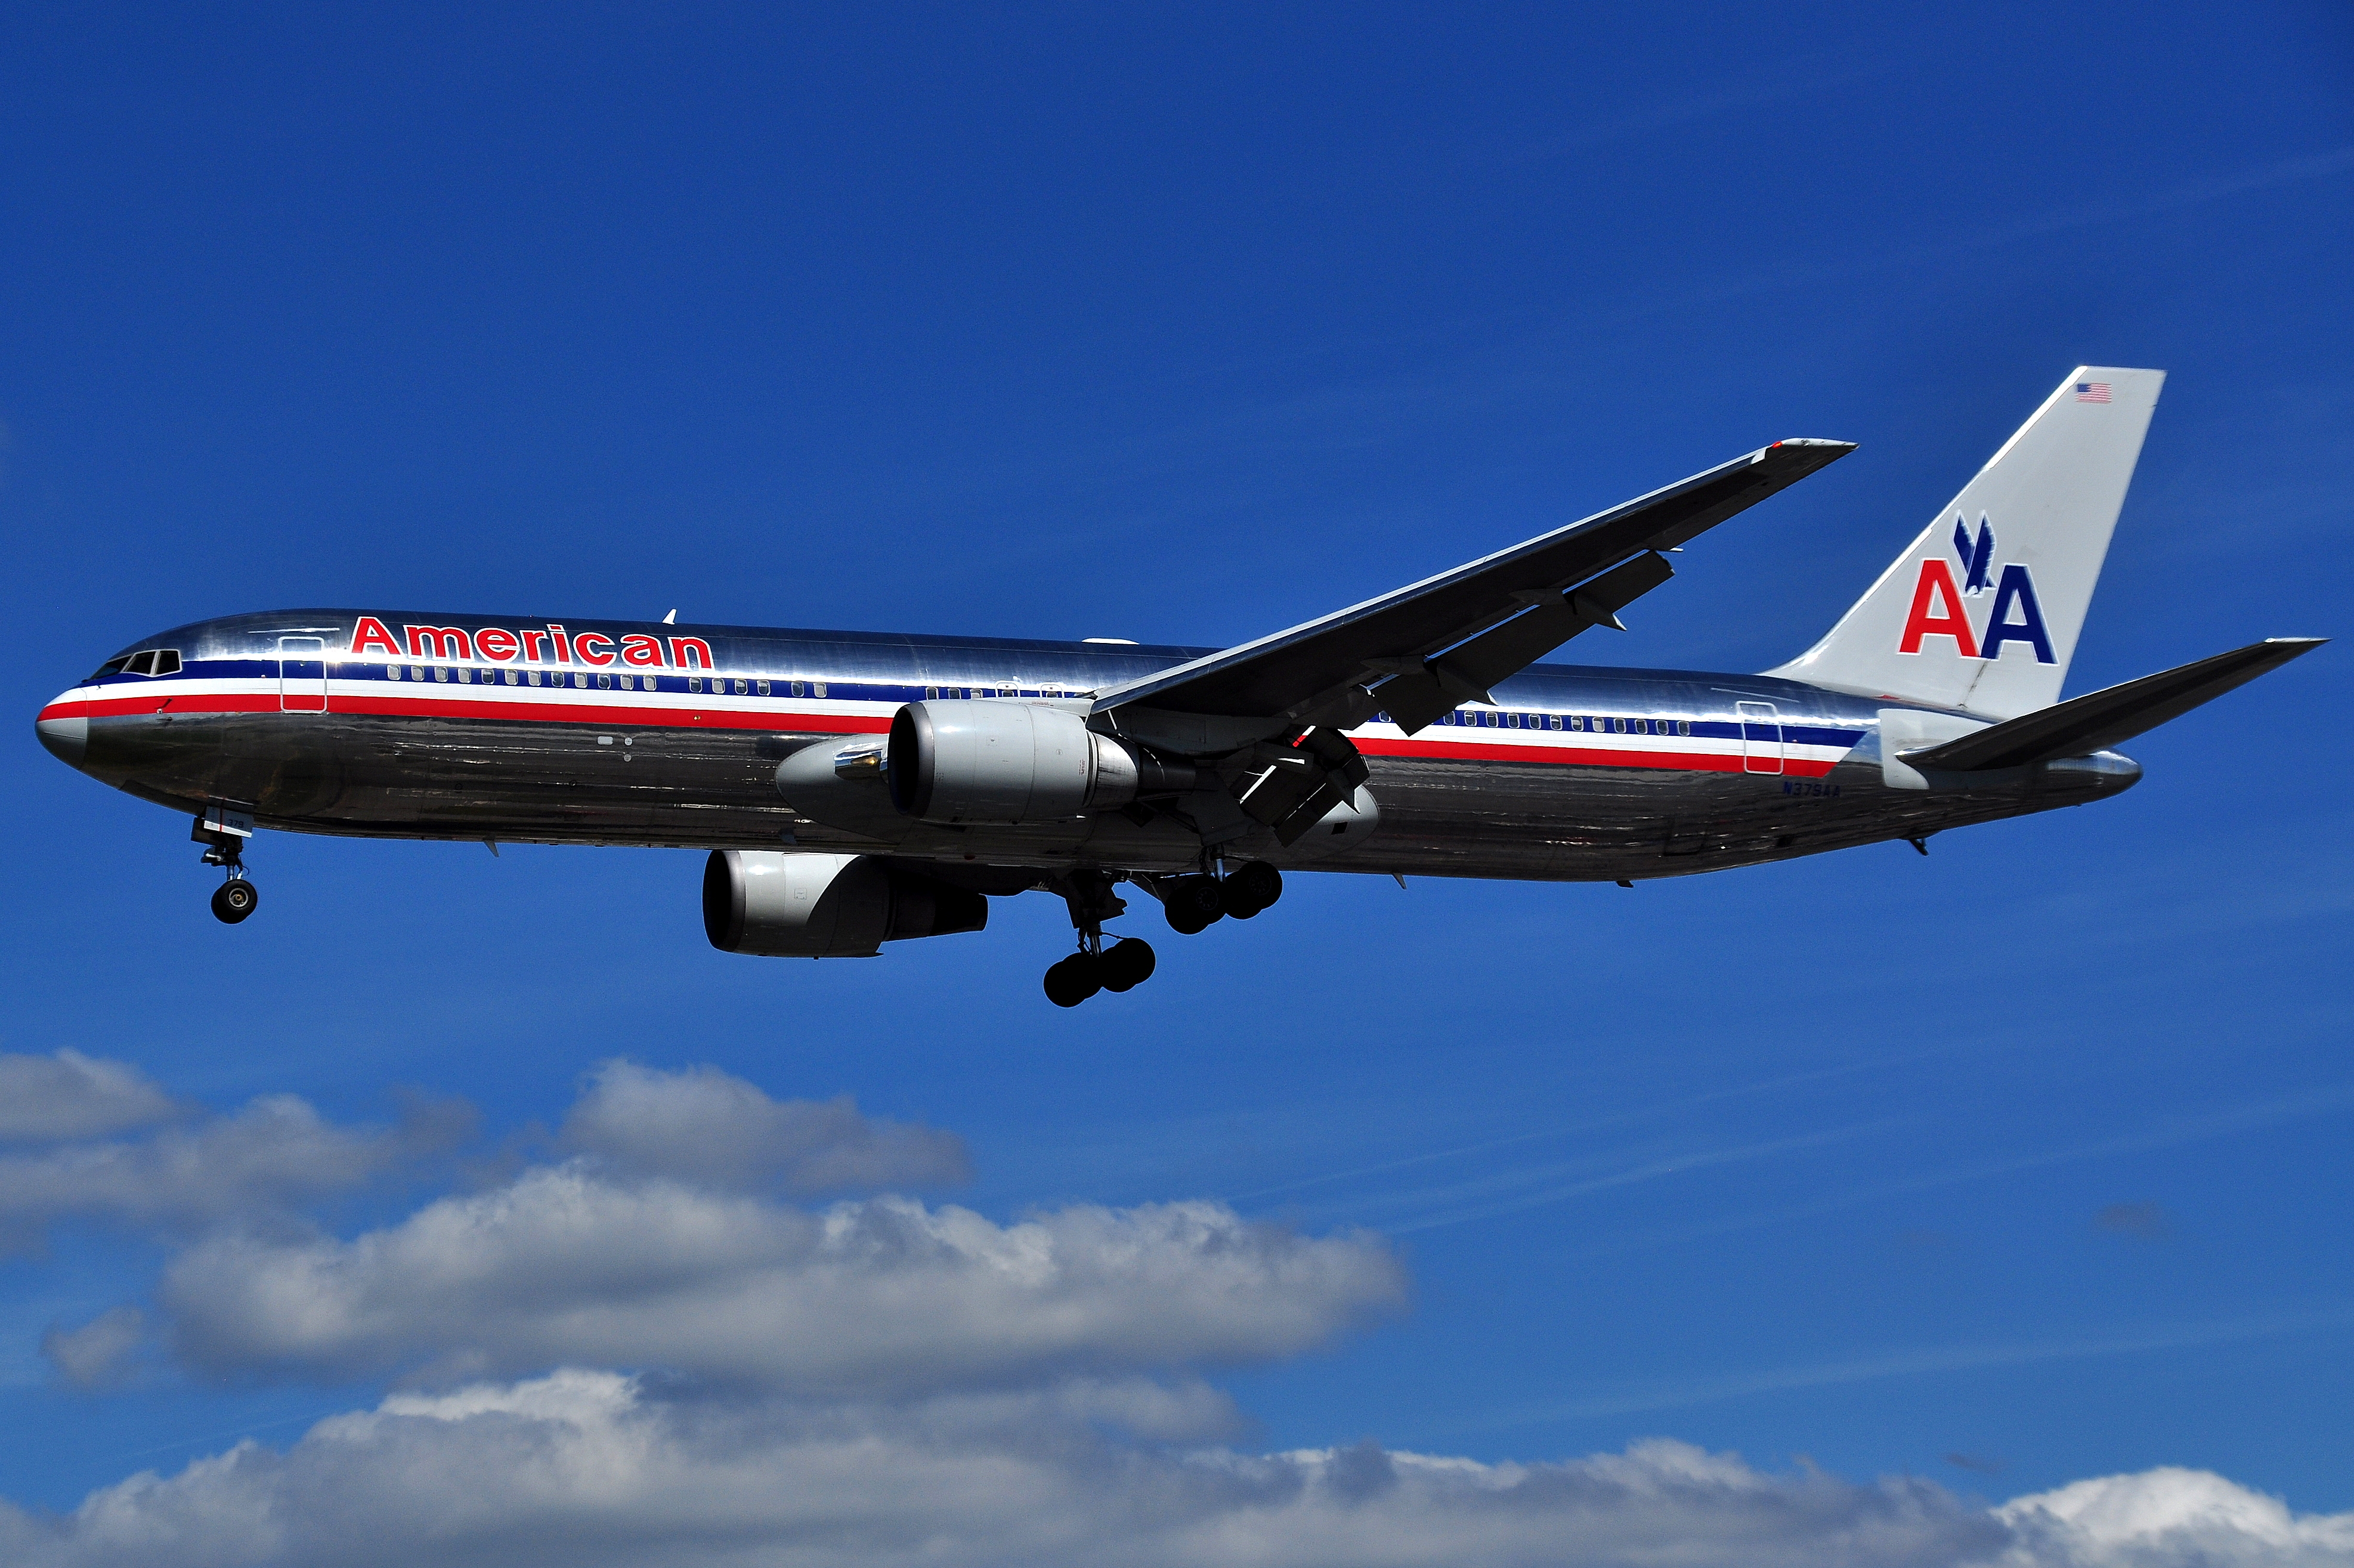 Download this Description Boeing American Airlines Naa picture